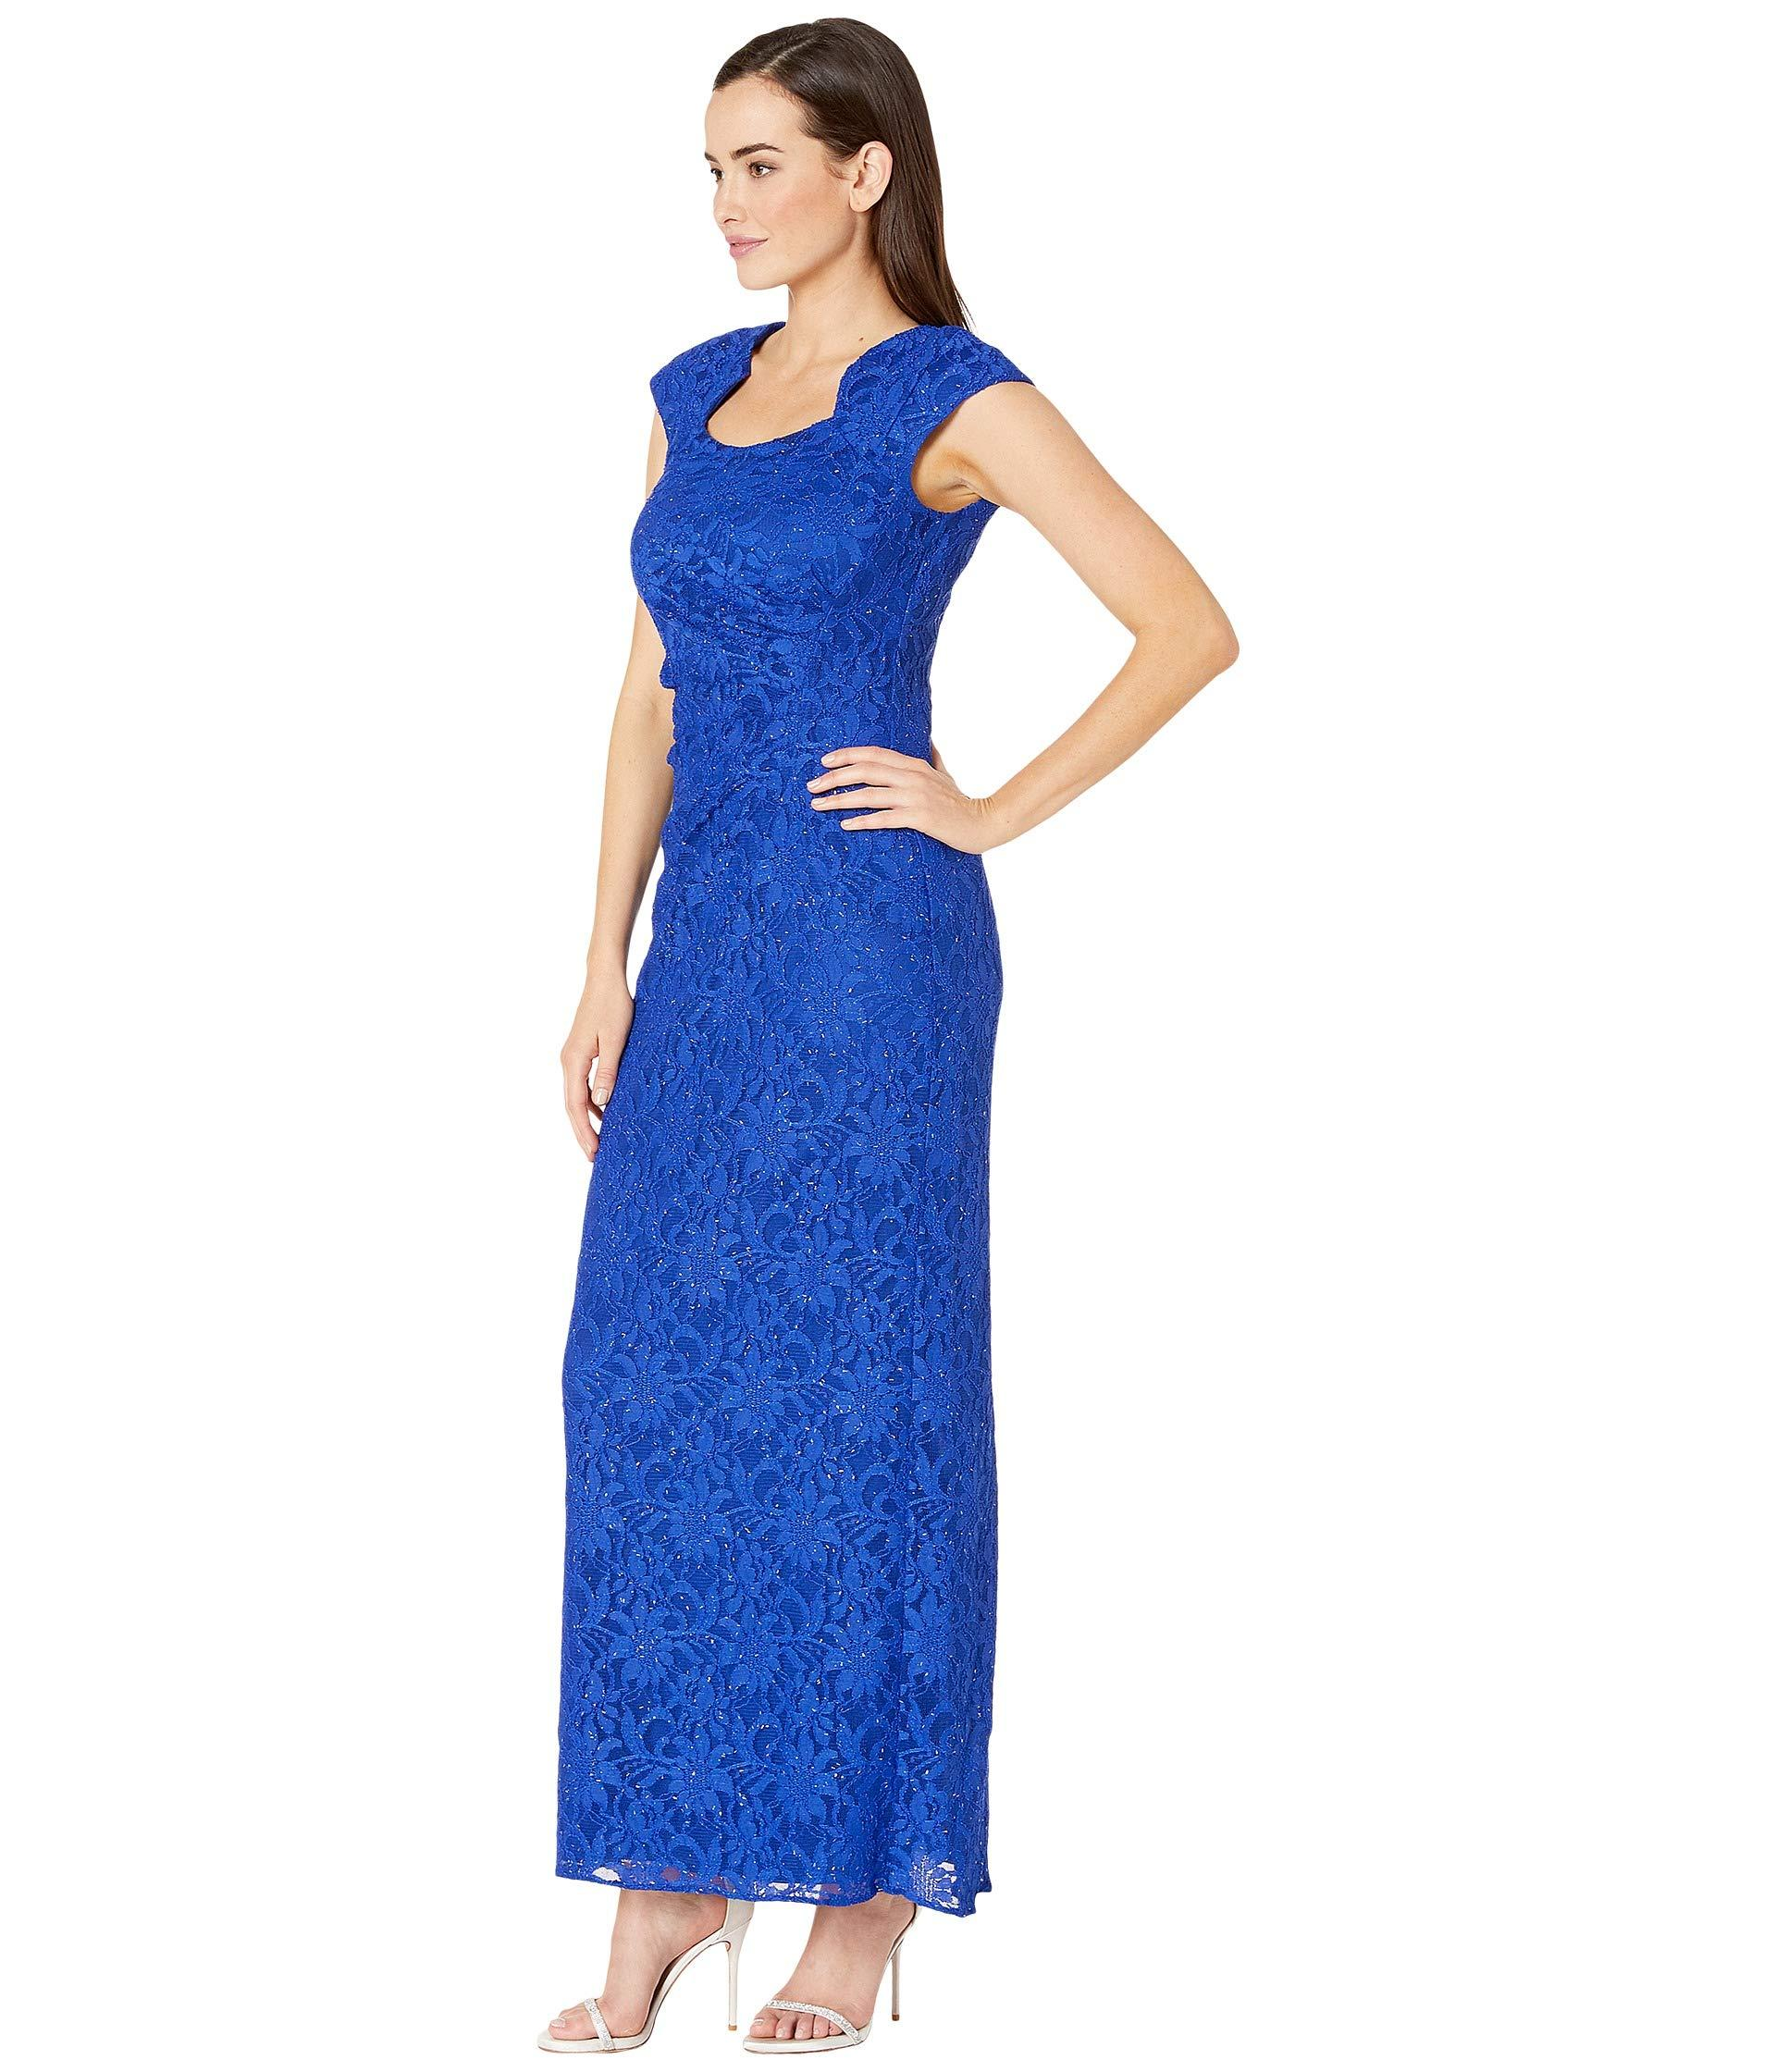 4a06aaf8c7e9 Lyst - Tahari Stretch Sequin Lace Cap Sleeve Gown With Horseshoe Neckline  (summer Royal) Women's Dress in Blue